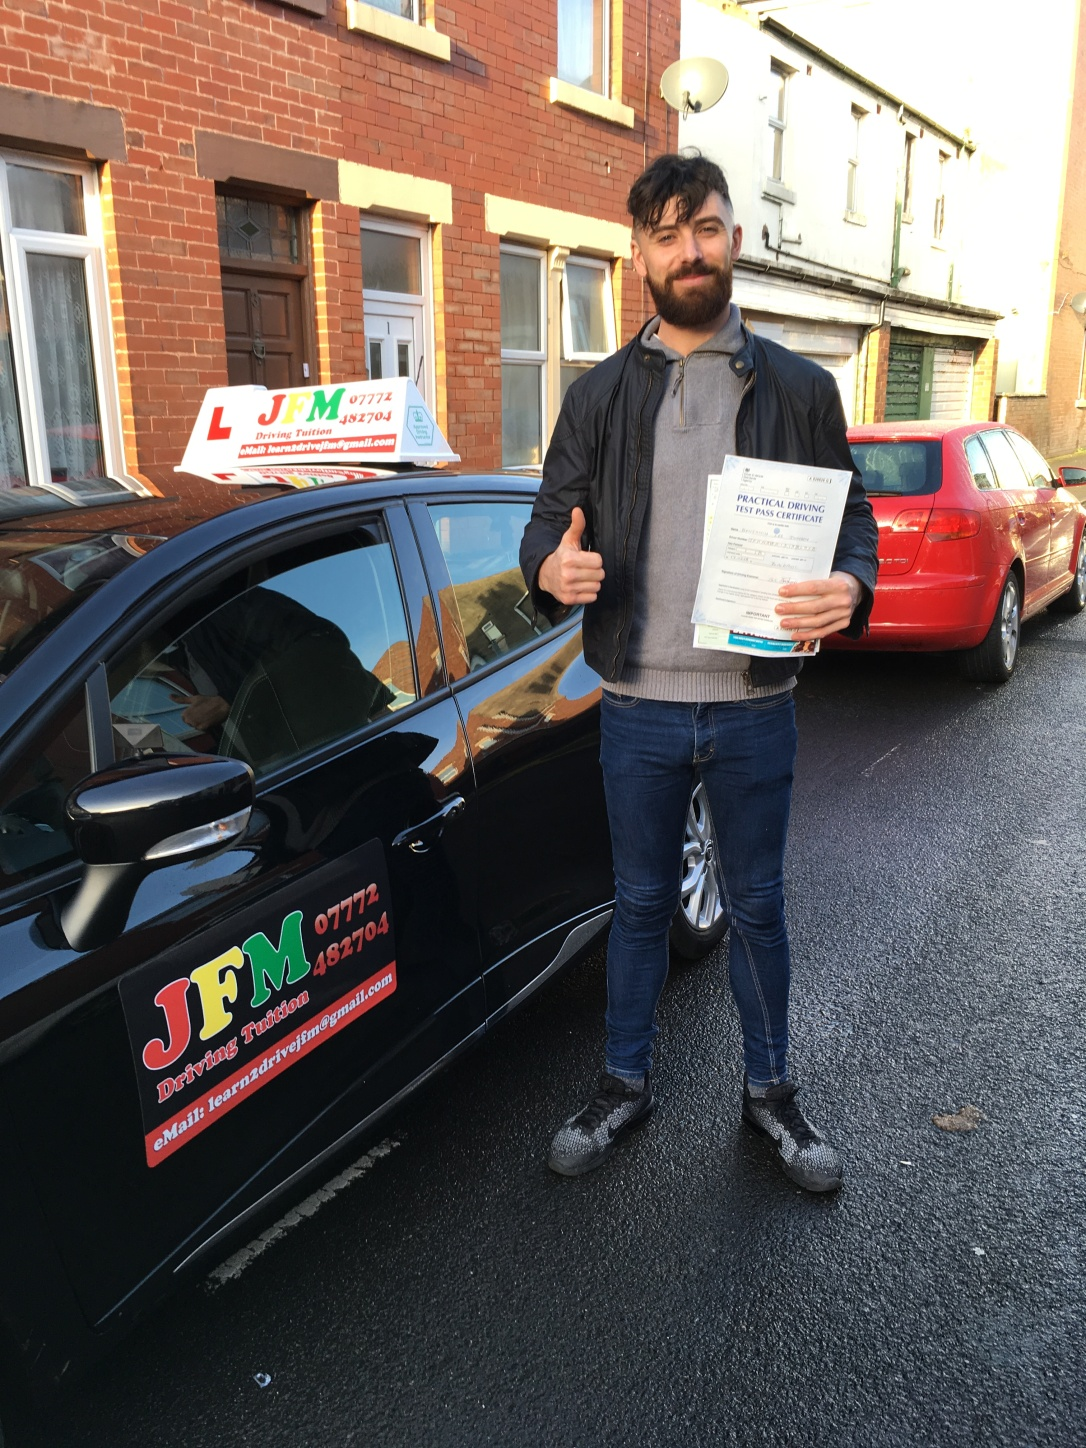 ben johnson driving test pass jfm drivimng tuition